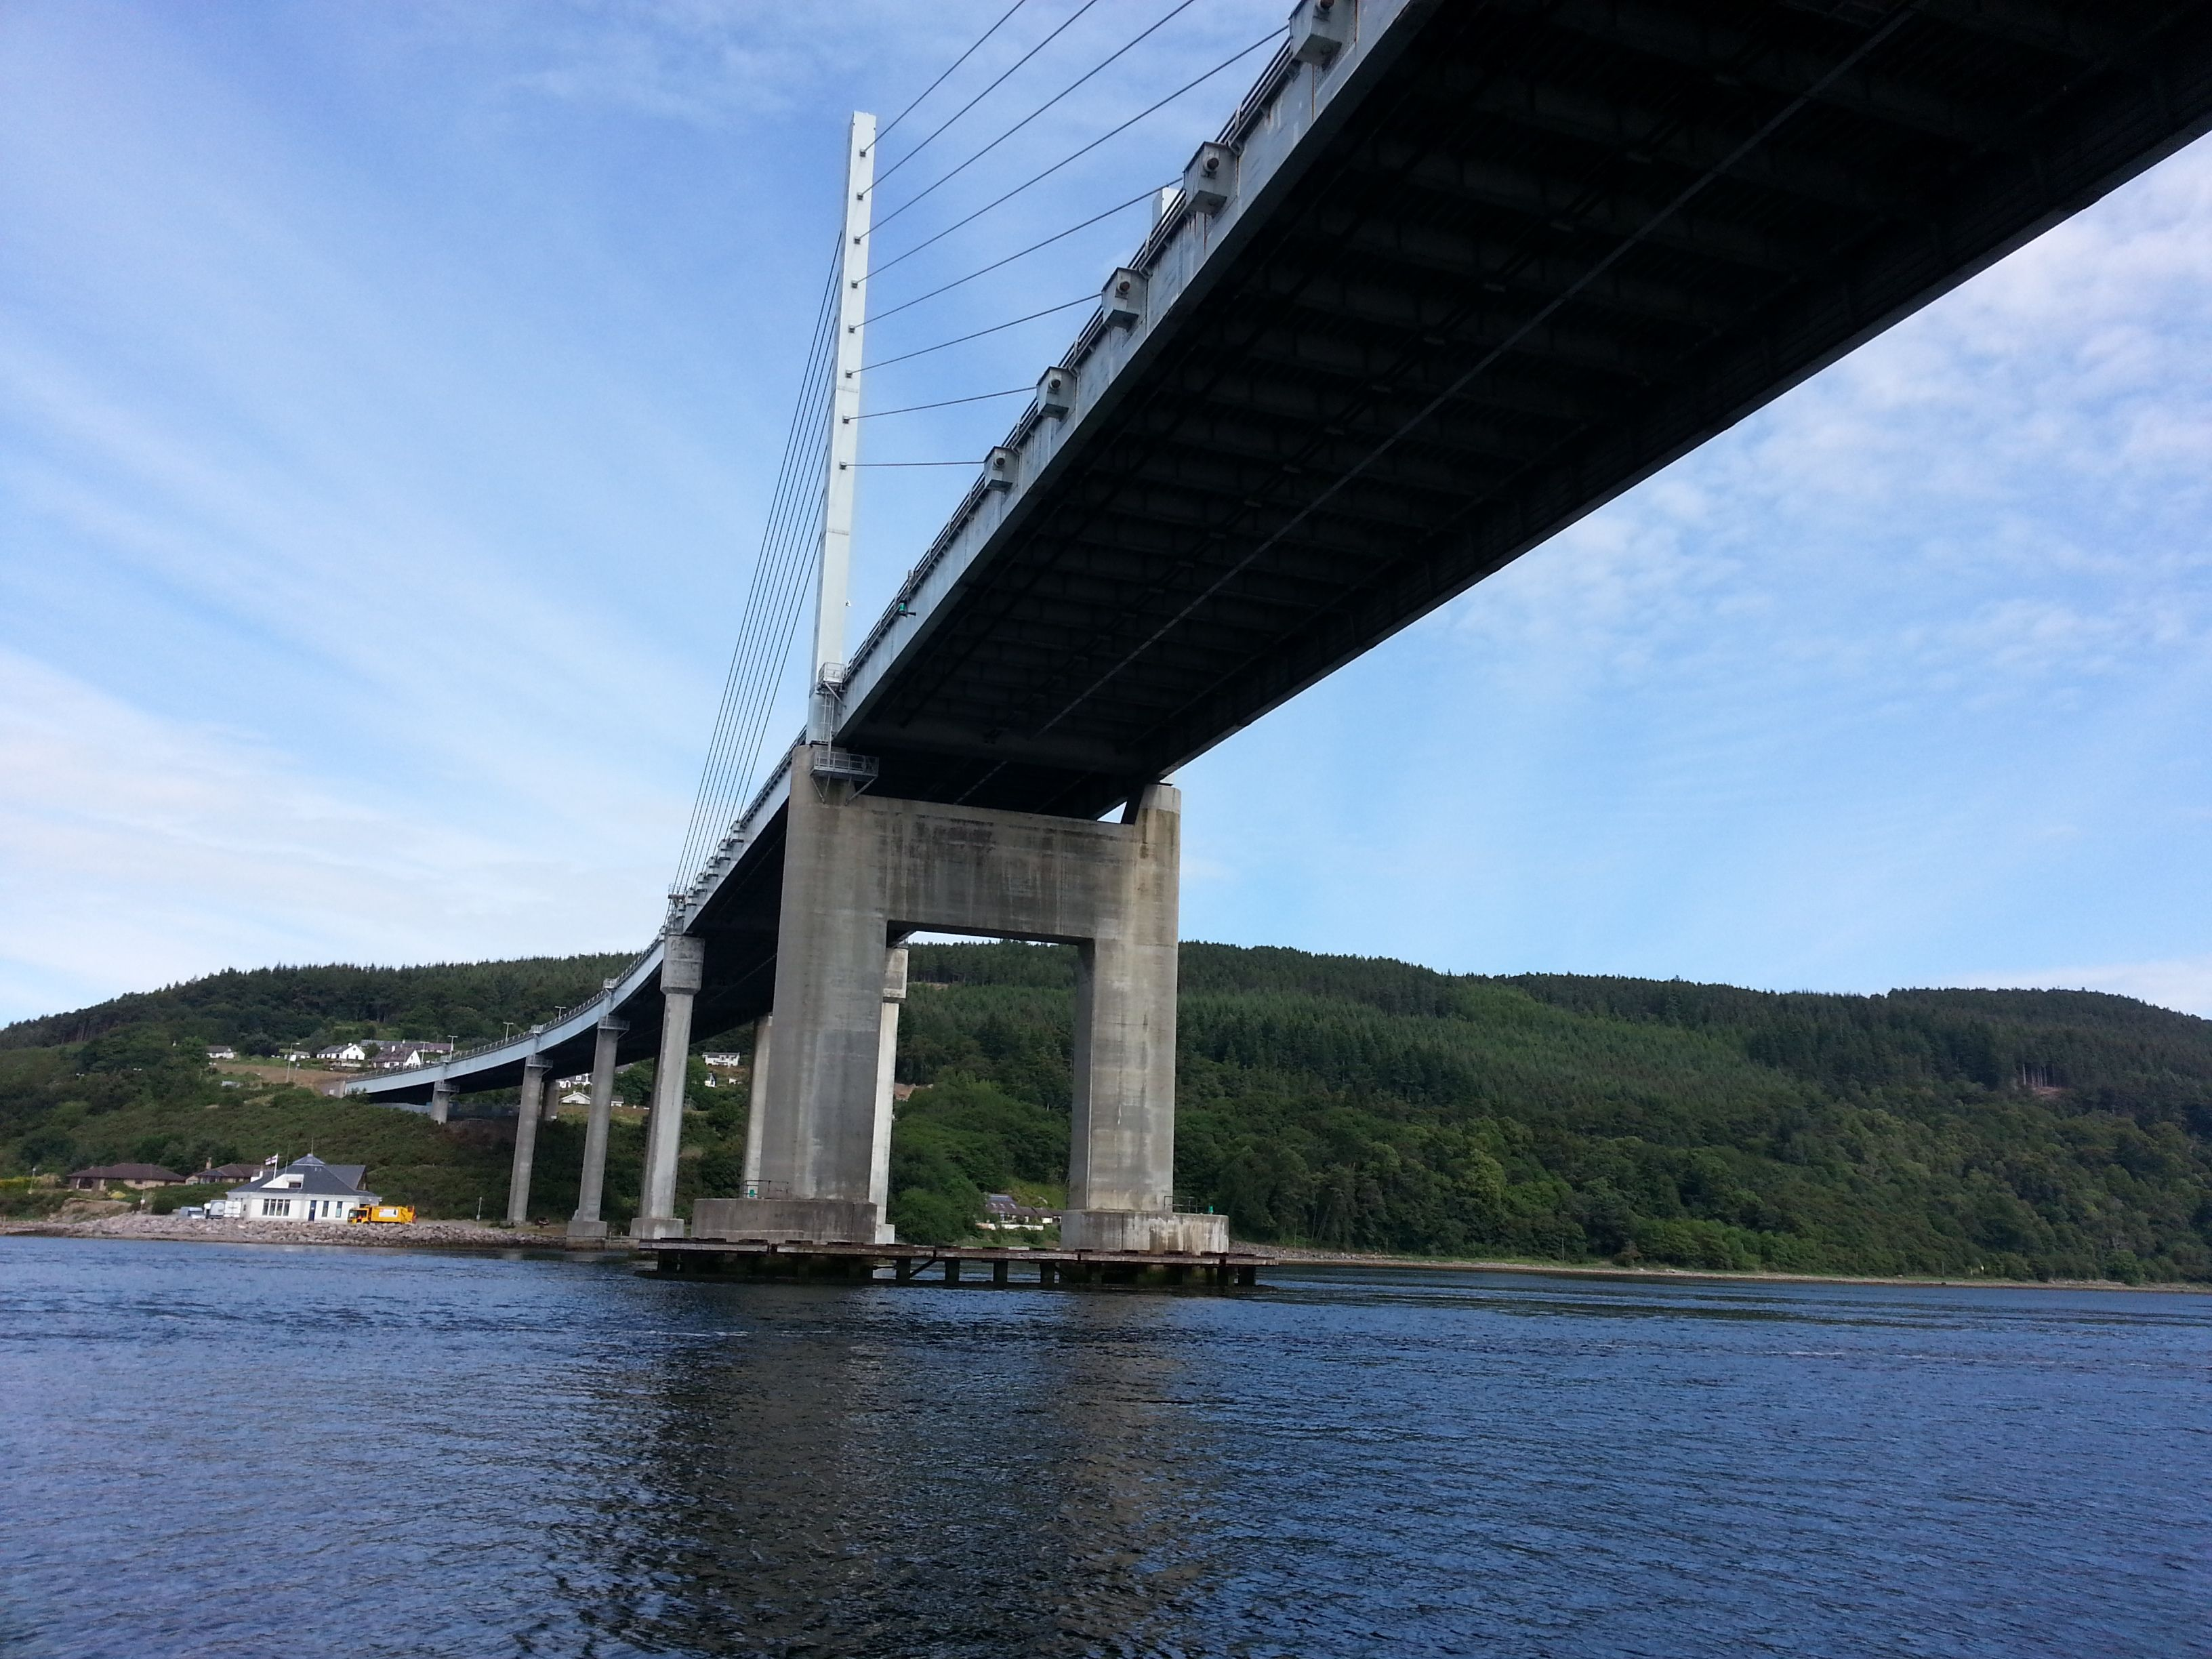 Approaching Kessock Bridge, Inverness from the angle few motorists appreciate.  A much better way to enjoy the bridge!